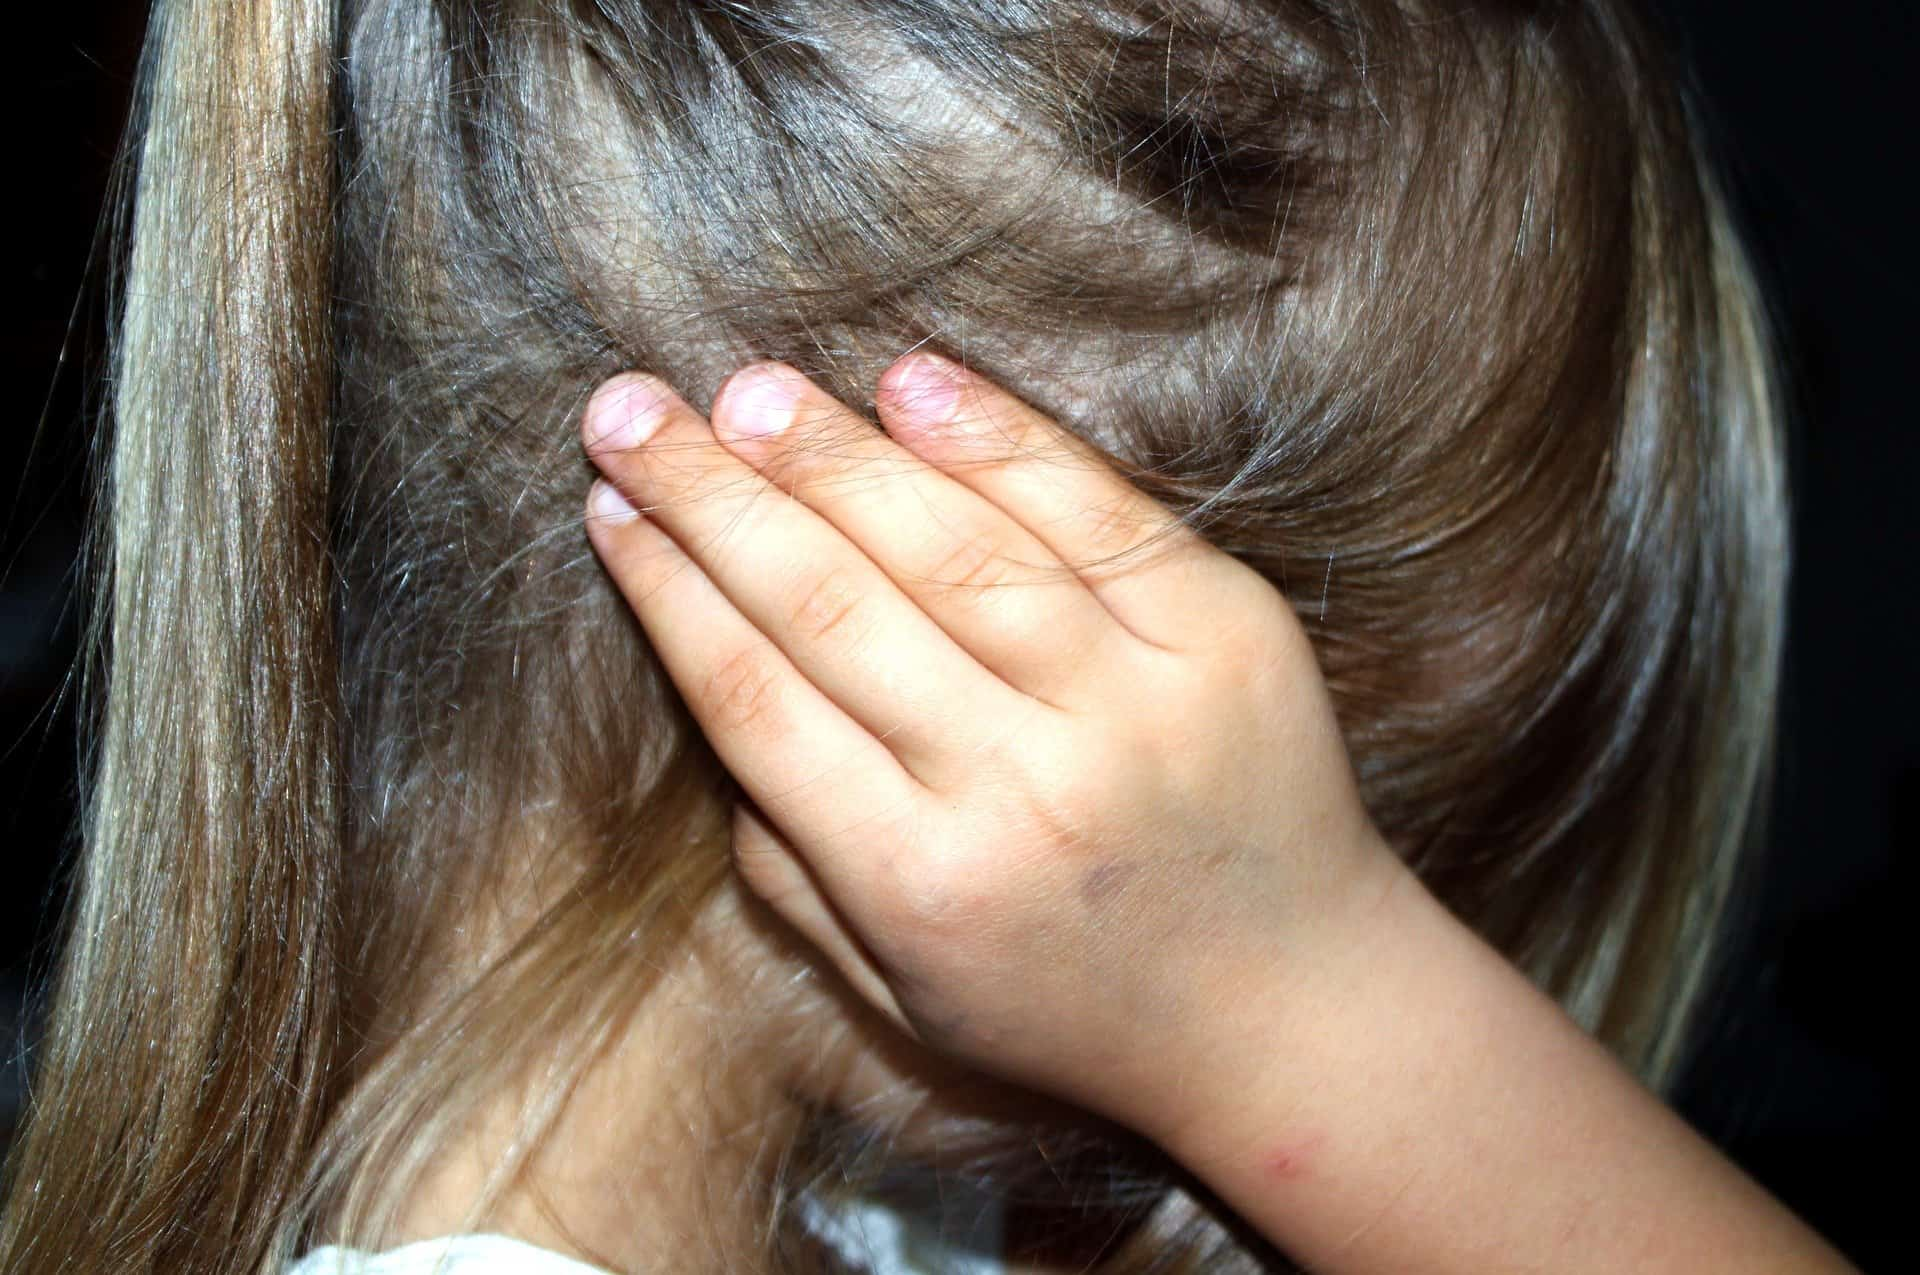 Little girl with brown hair covering her ears